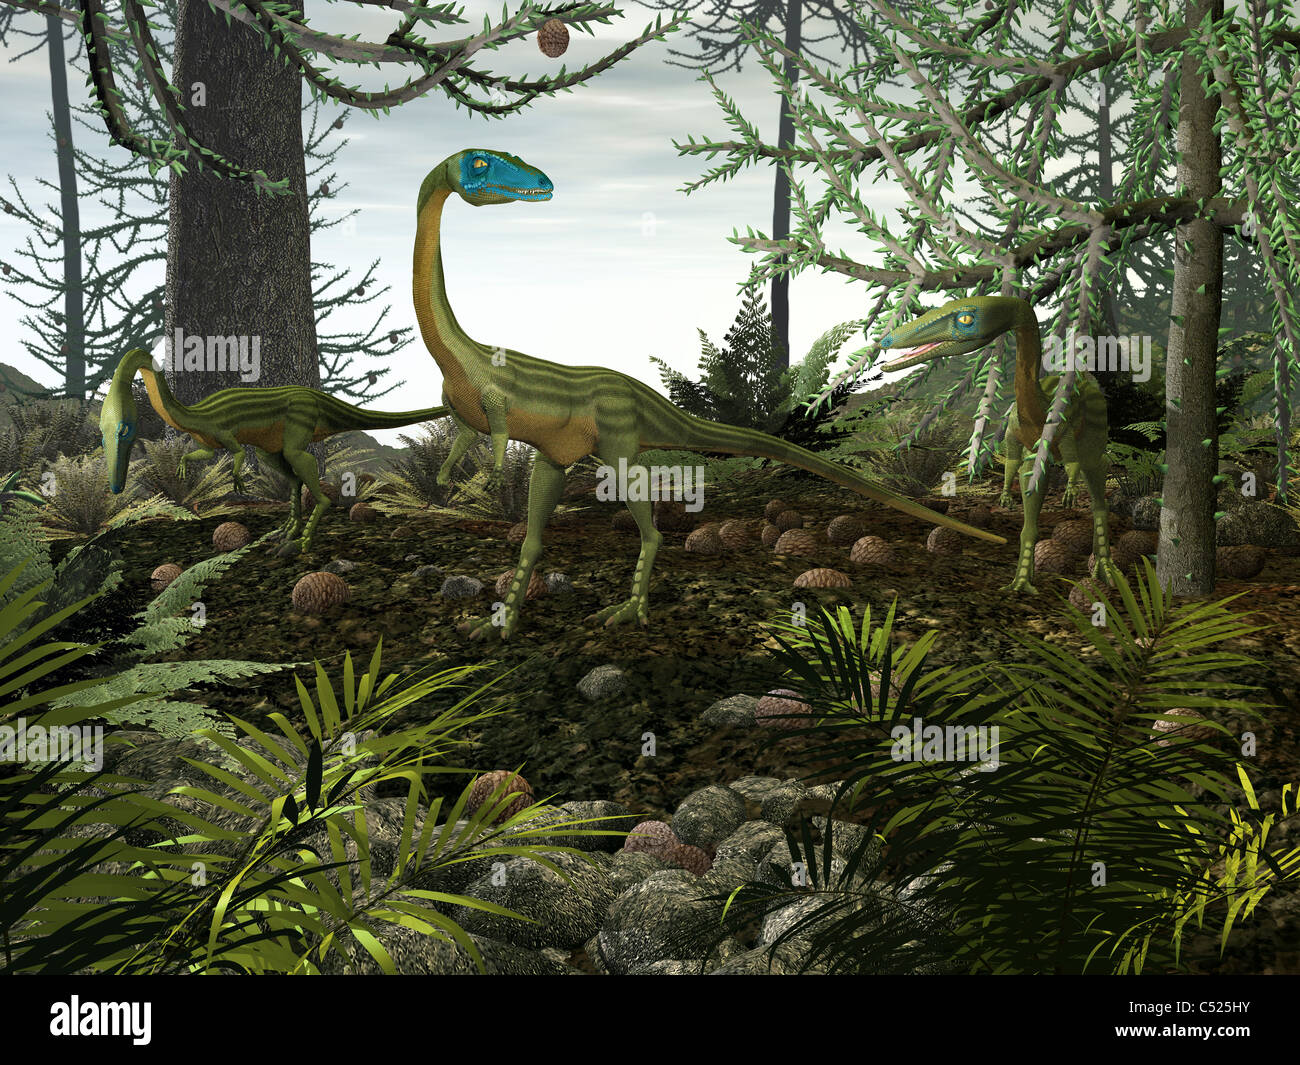 Coelophysis dinosaurs walk amongst a forest. - Stock Image